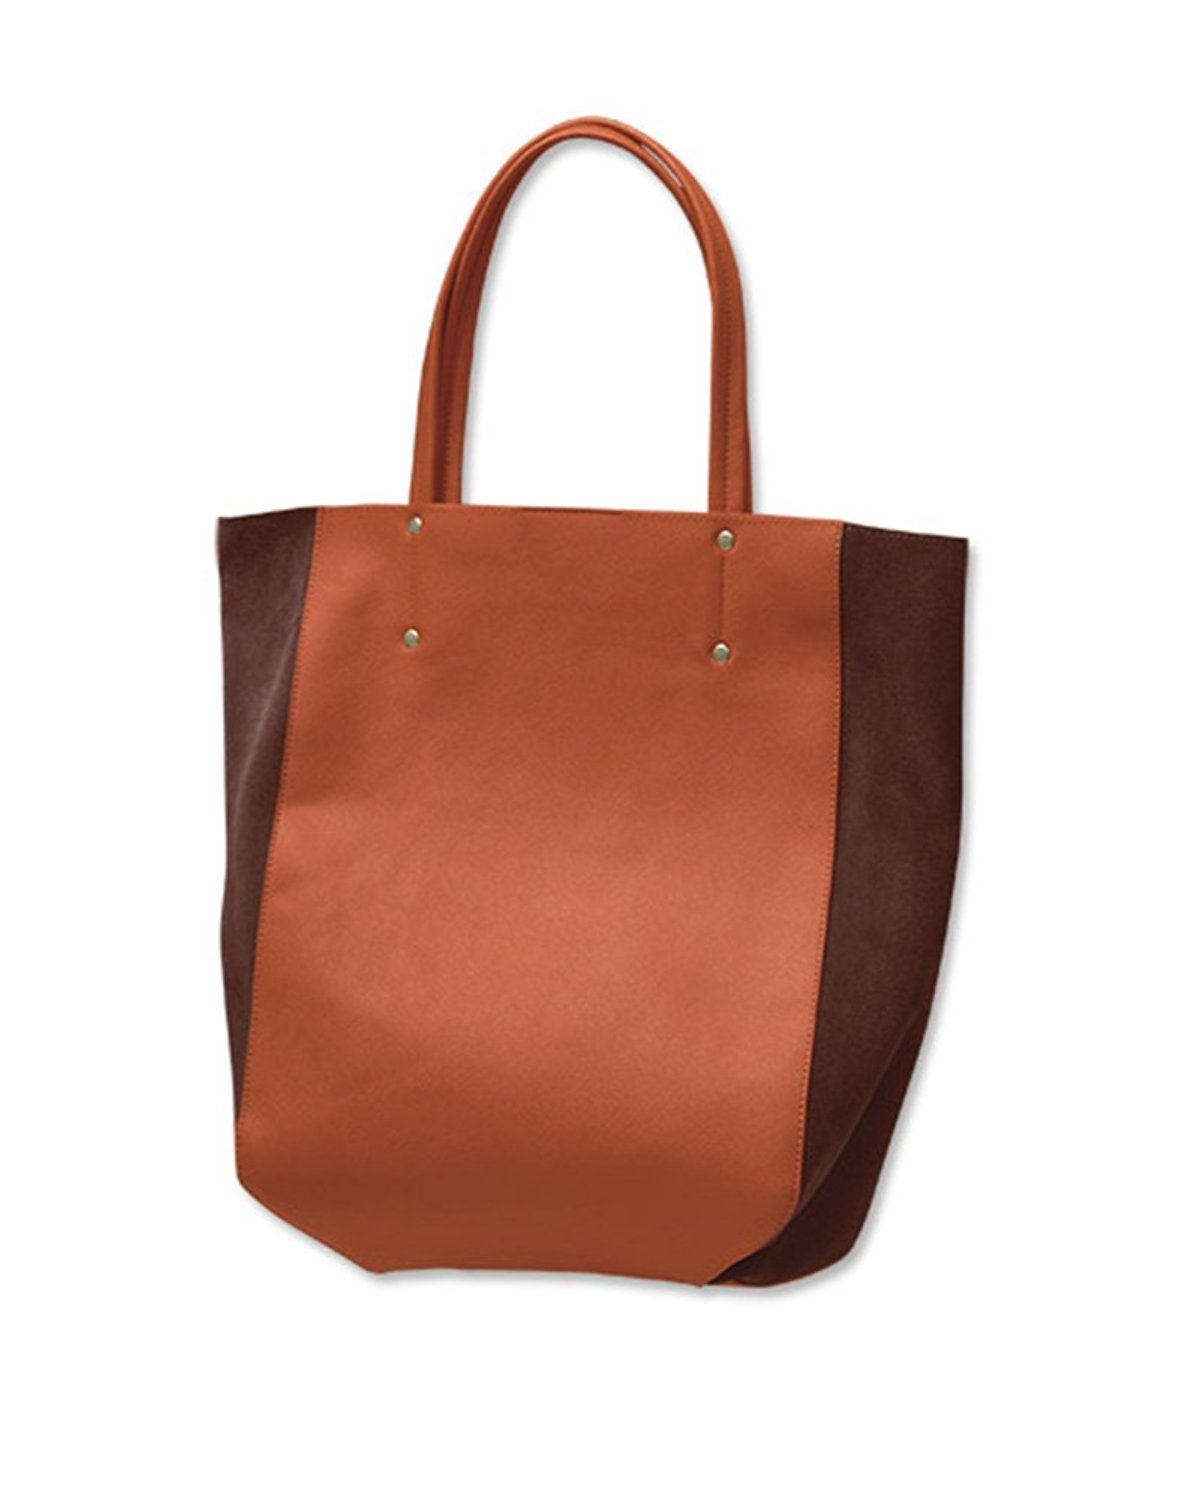 975707e3339d Get Quotations · Orvis Vegan-leather Suede Colorblocked Tote   Vegan-leather    Suede Colorblocked Tote